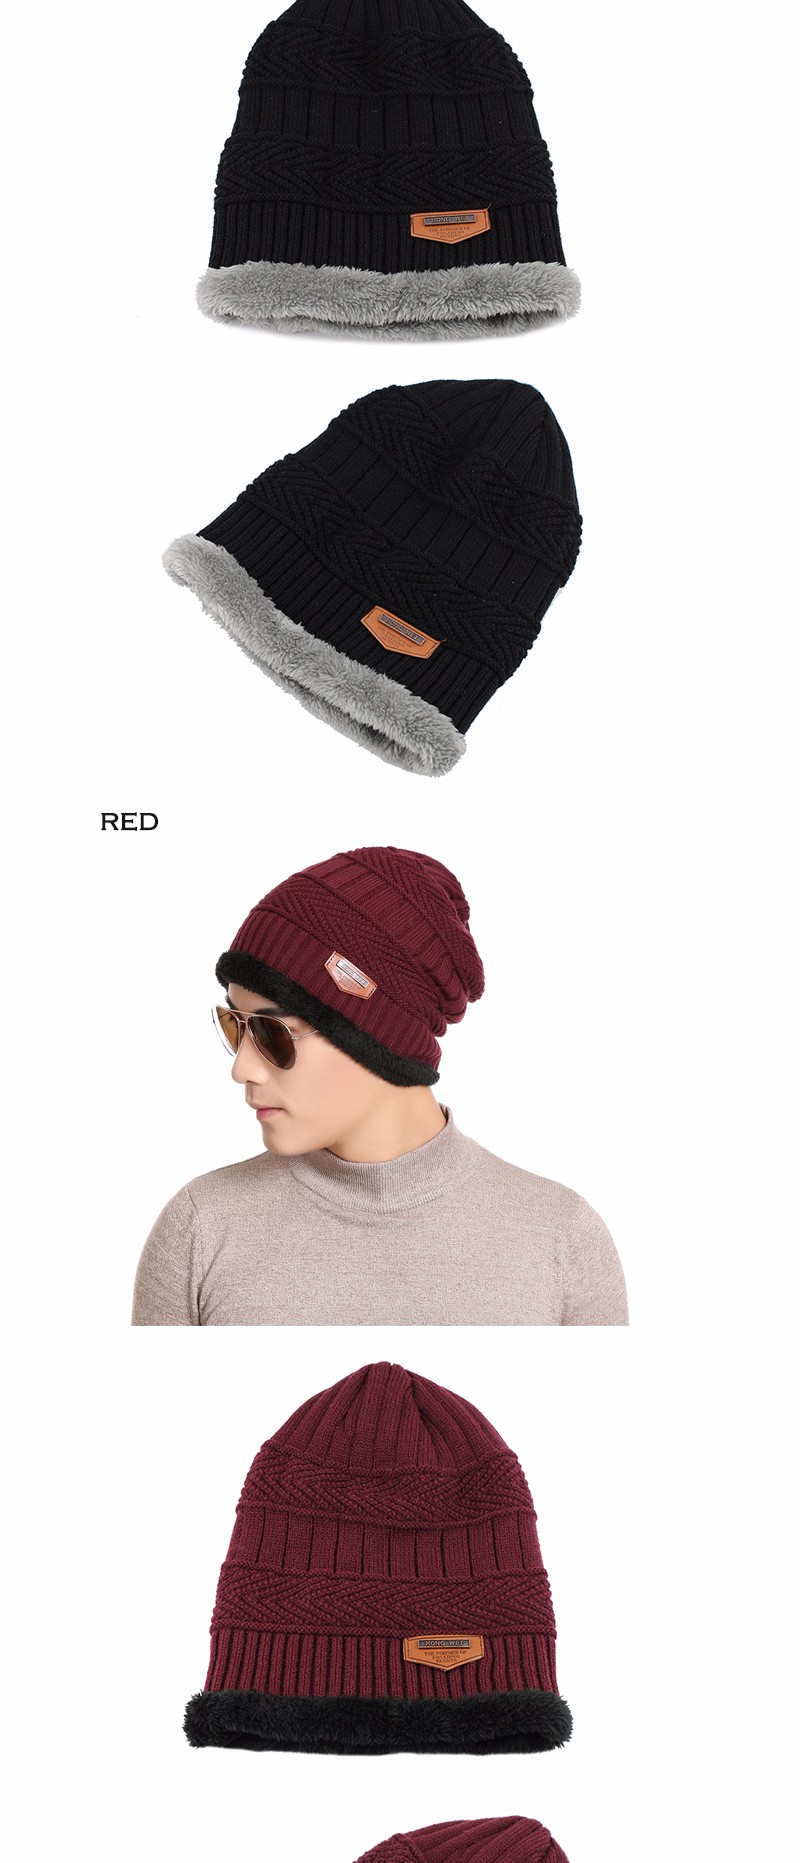 FETSBUY Pure Color Winter Skullies Beanies Hat Knit Winter Hat For Man Warm Hat Velvet Cap Bonnet Toucas Inverno Knitted Hats 56